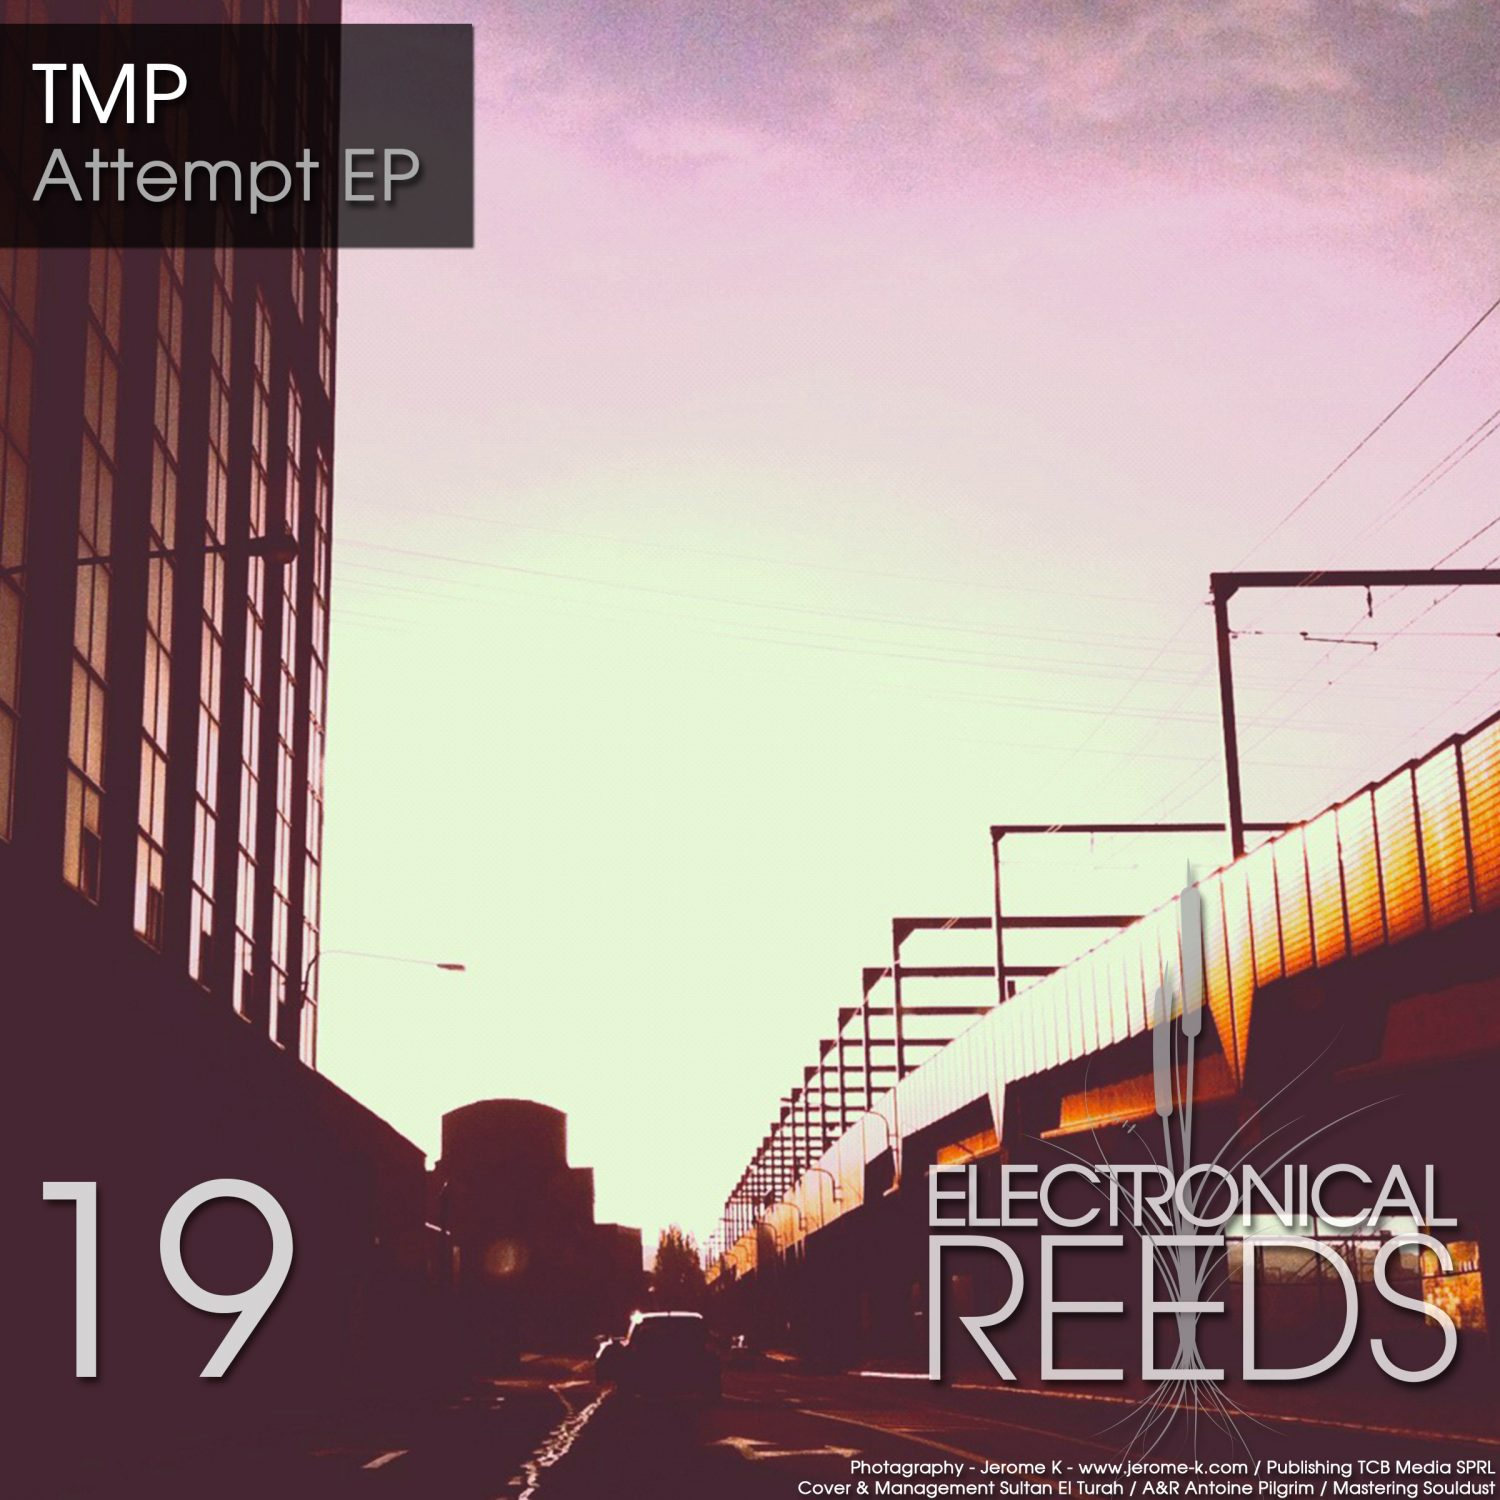 ER019 - TMP - Attempt EP - Electronical Reeds